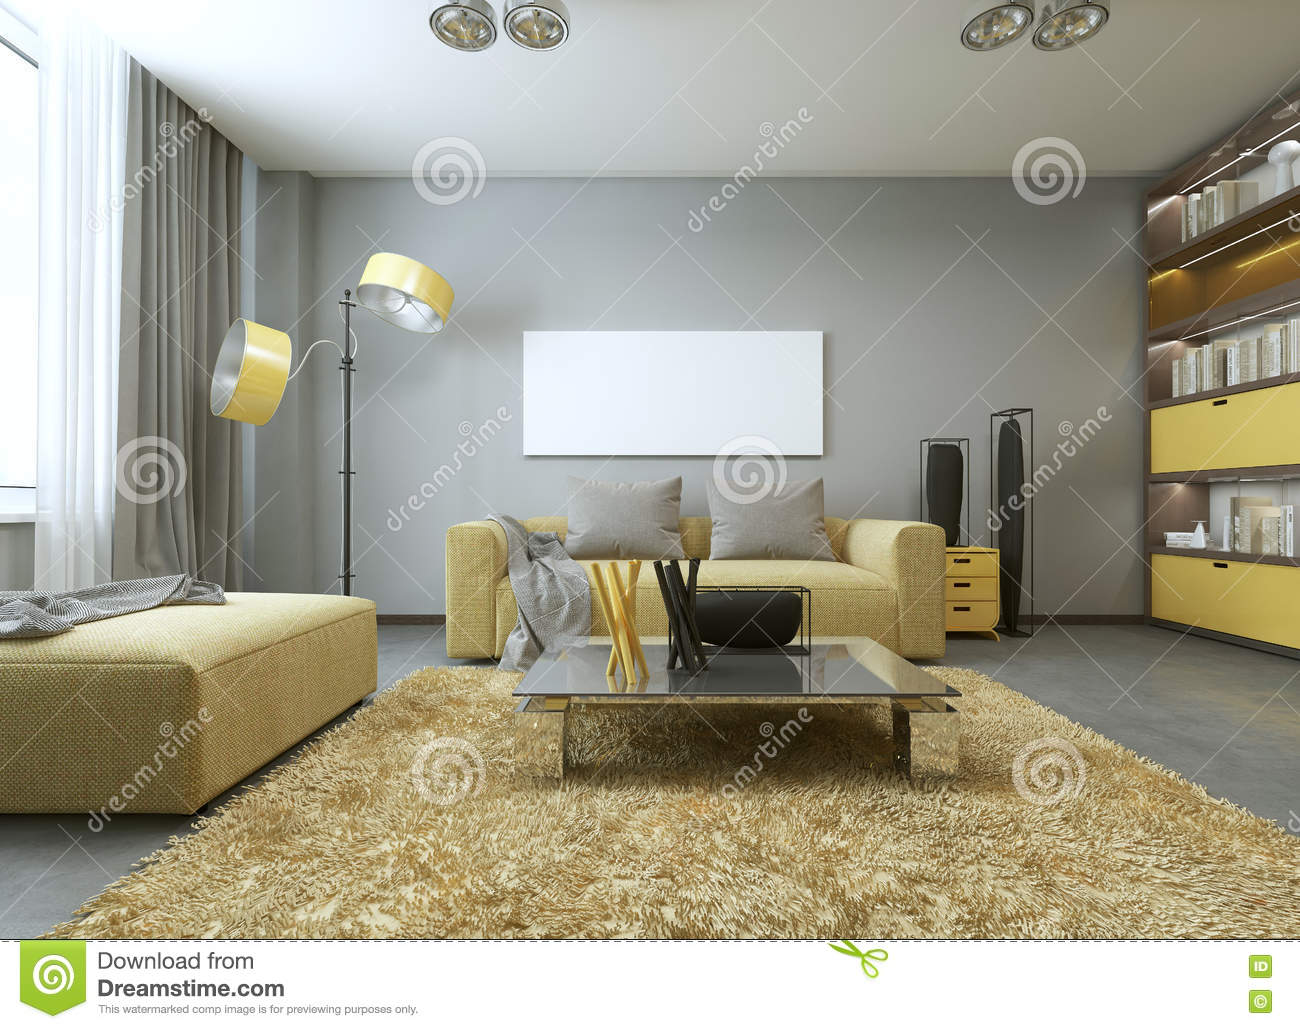 Yellow sofa in modern living room